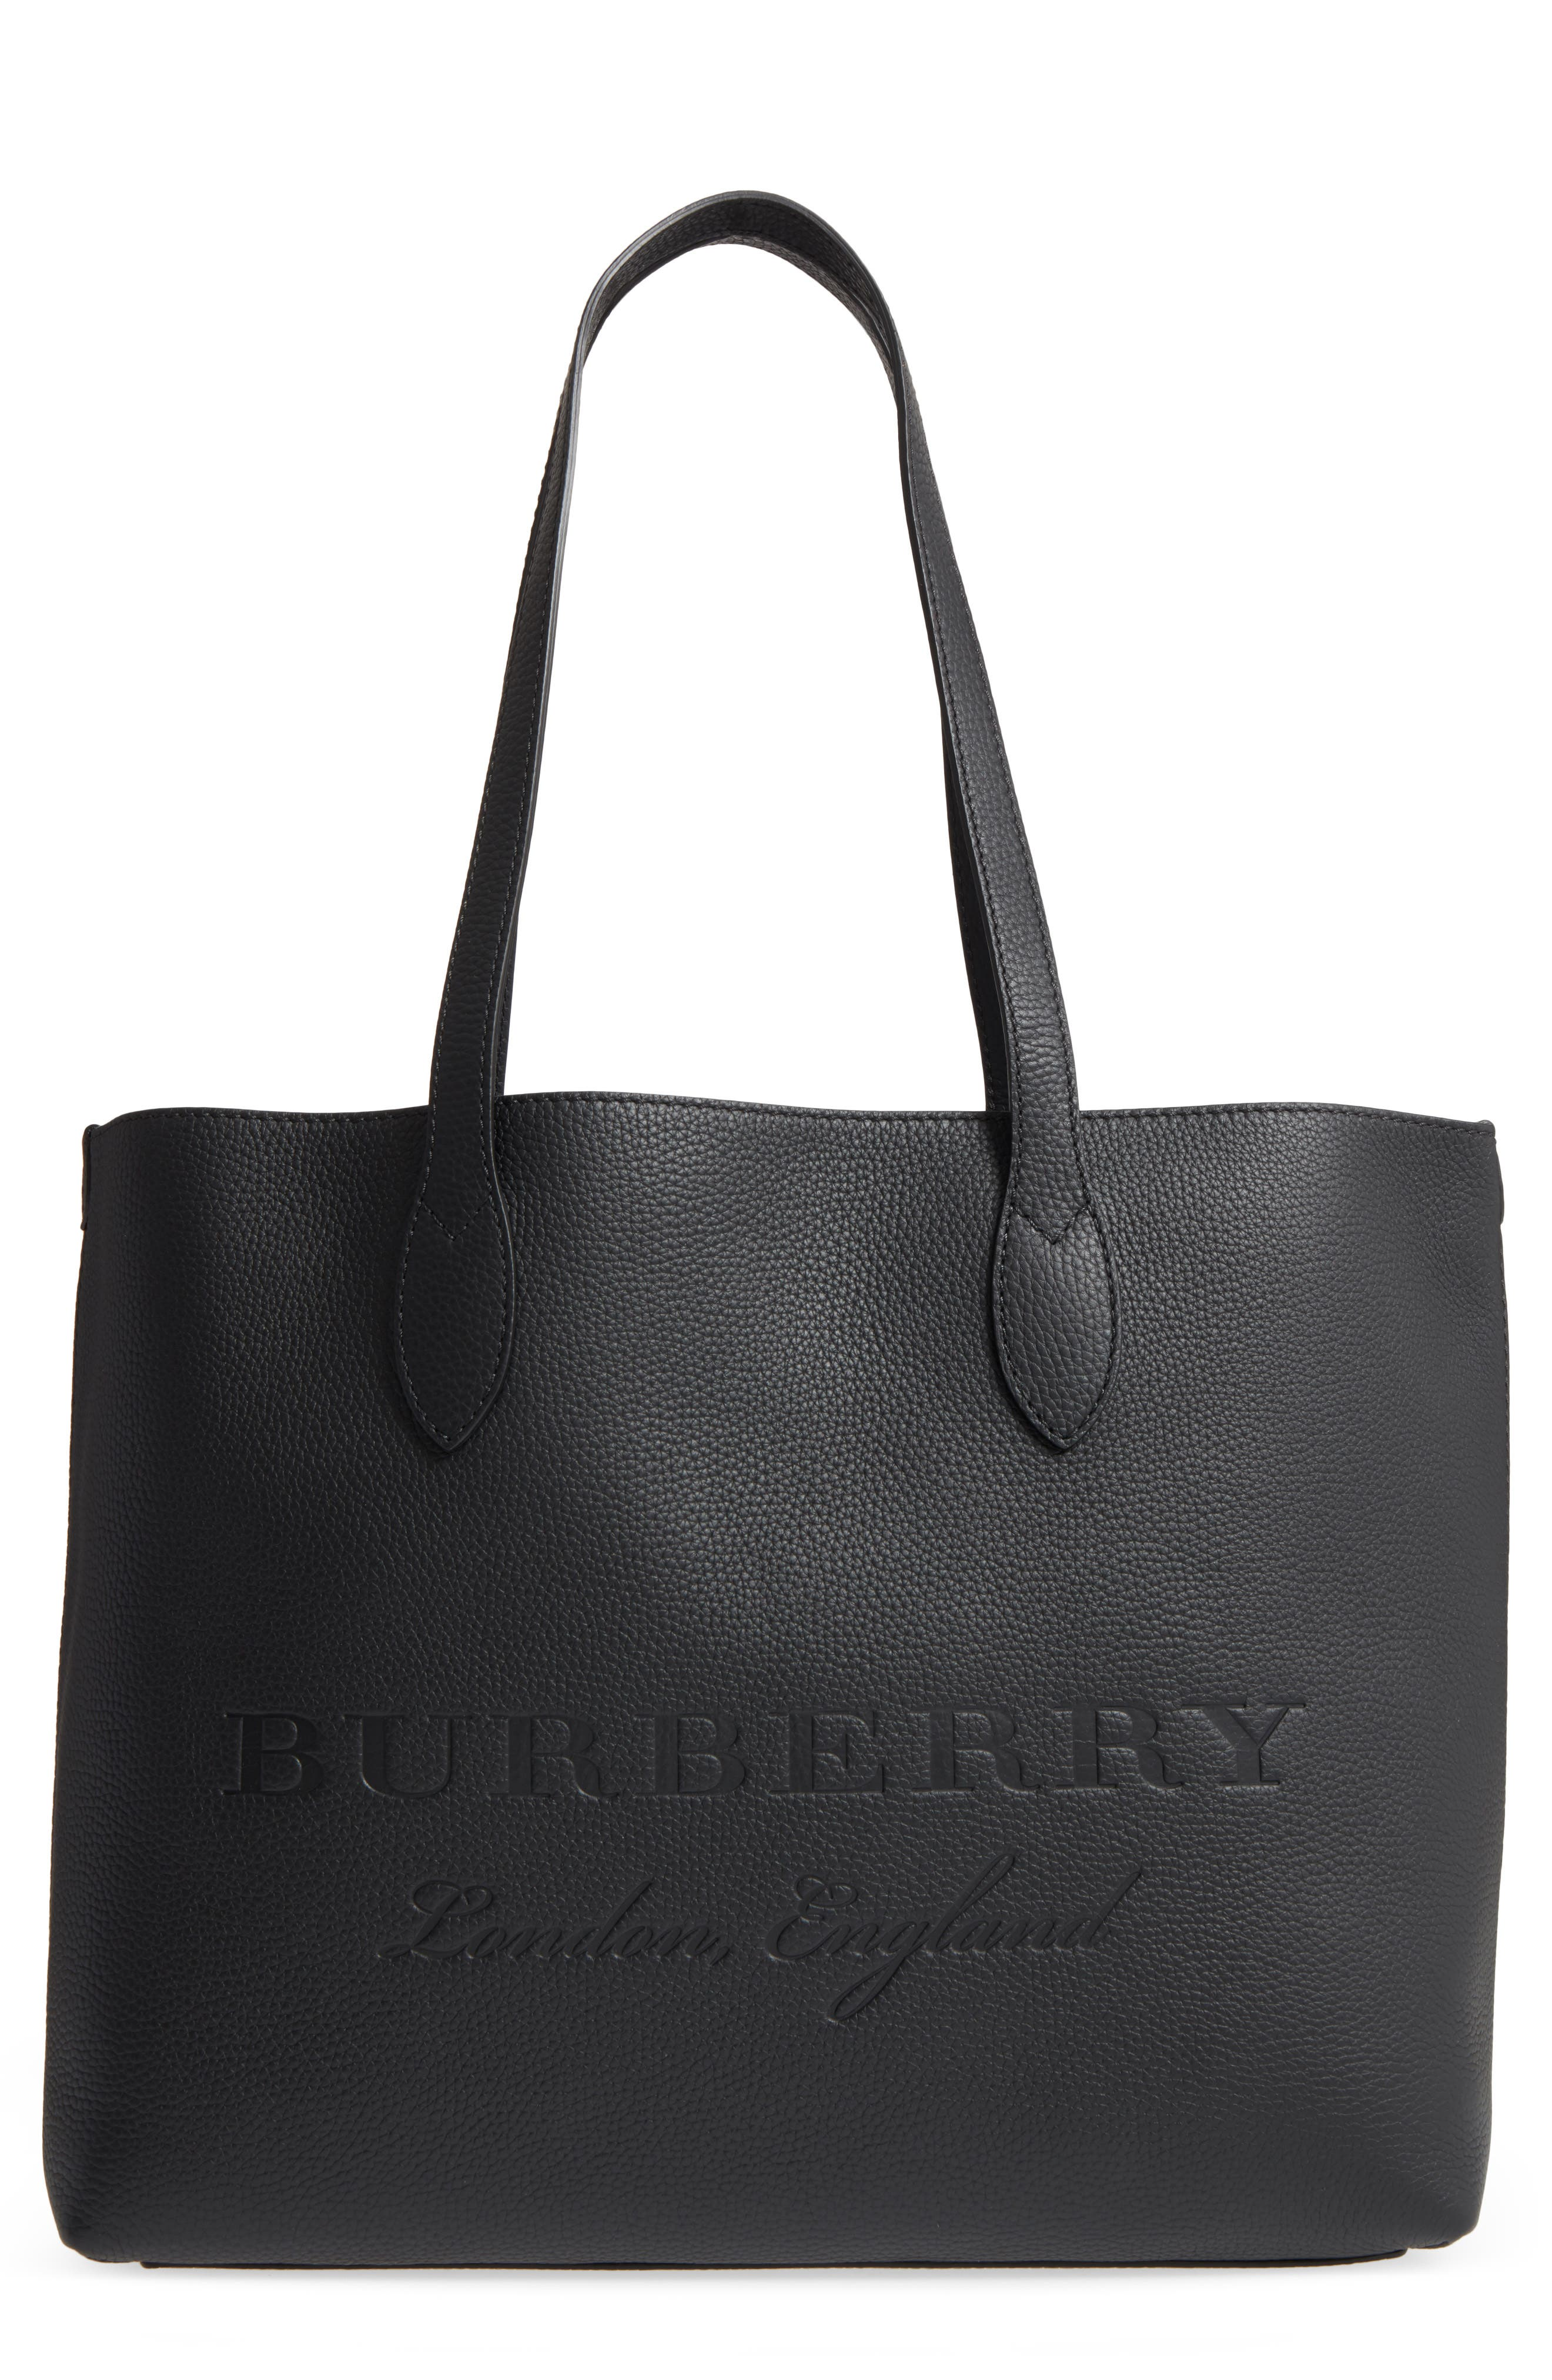 Main Image - Burberry Remington Leather Tote